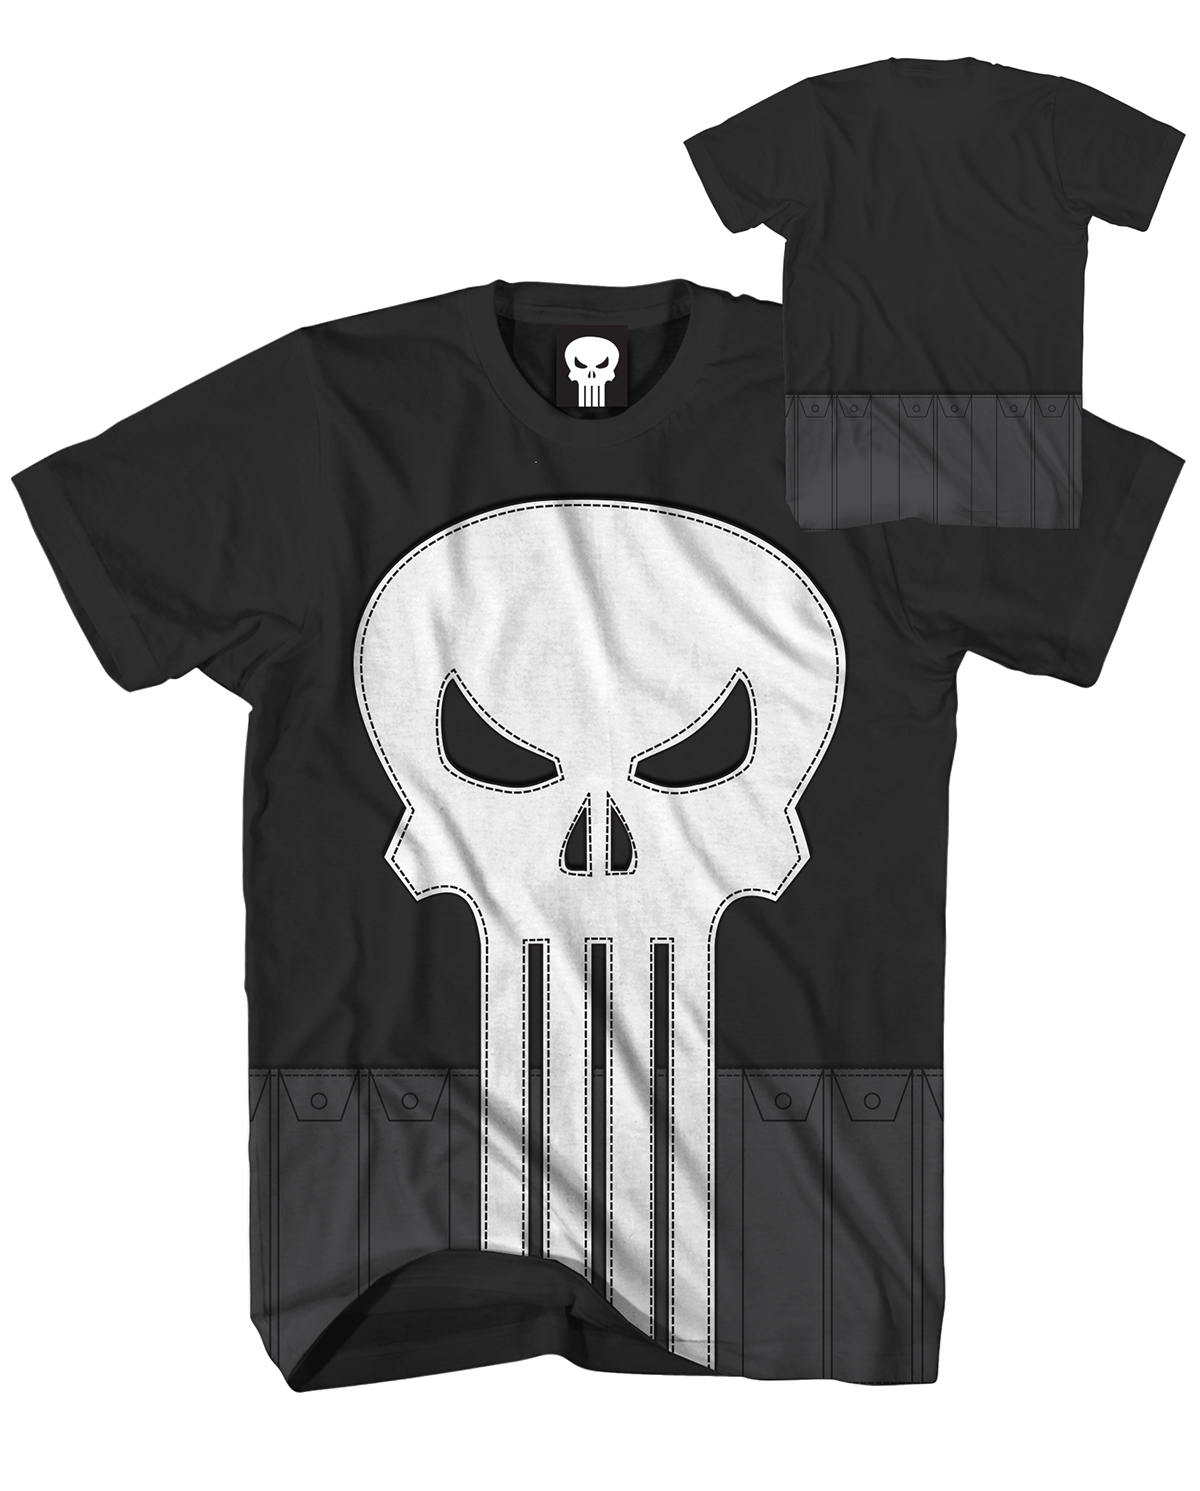 PUNISHER SEWN PUNISHER BLACK T/S XXL